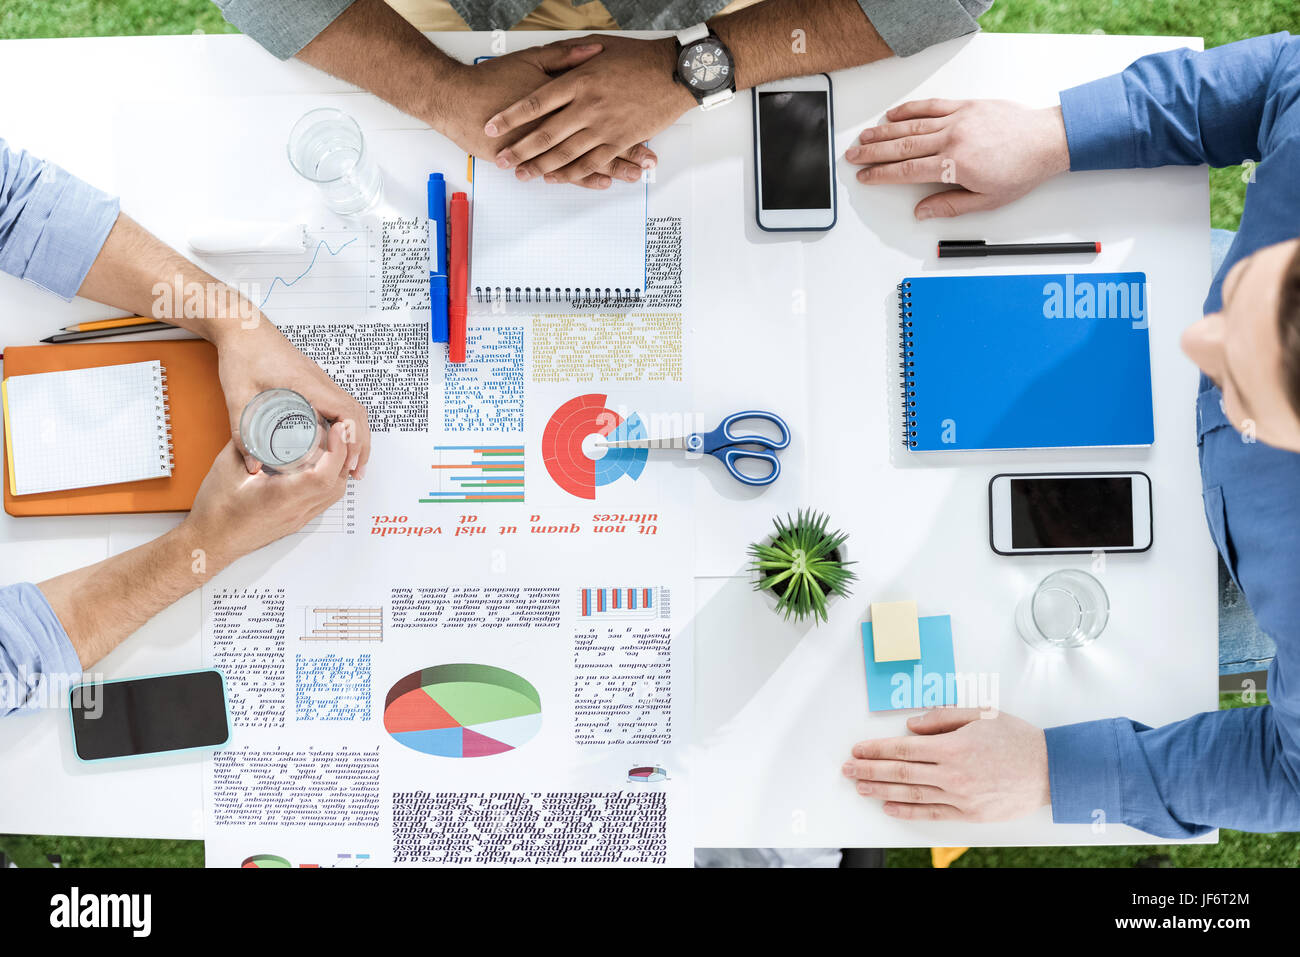 Overhead view of young businessmen sitting at table with papers and discussing new project, business teamwork concept - Stock Image